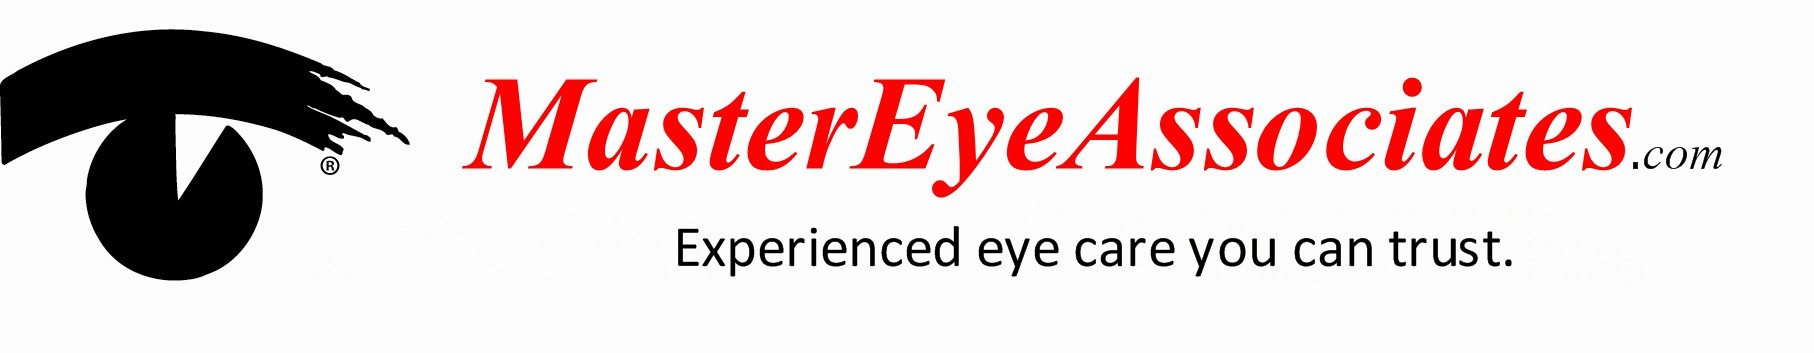 Master Eye Associates, austin eye doctors, optometrists, glaucoma specialists